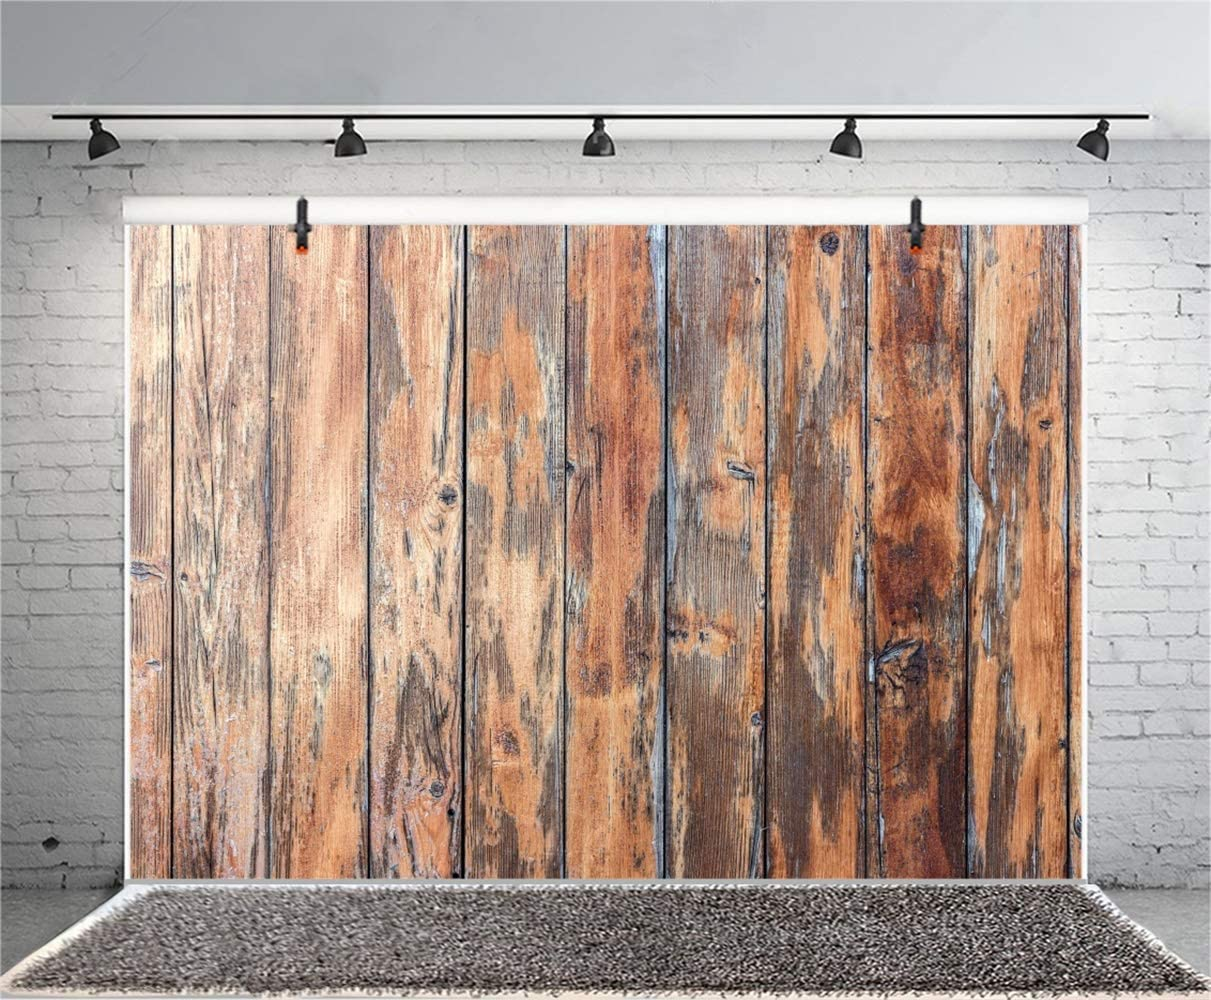 Grunge Old Wood Plank Vinyl Photography Backdrops 10x7ft Weathered Rustic Wooden Board Background Countryside Shabby Vertical Striped Wooden Wall Backdrops Personal Portraits Shooting